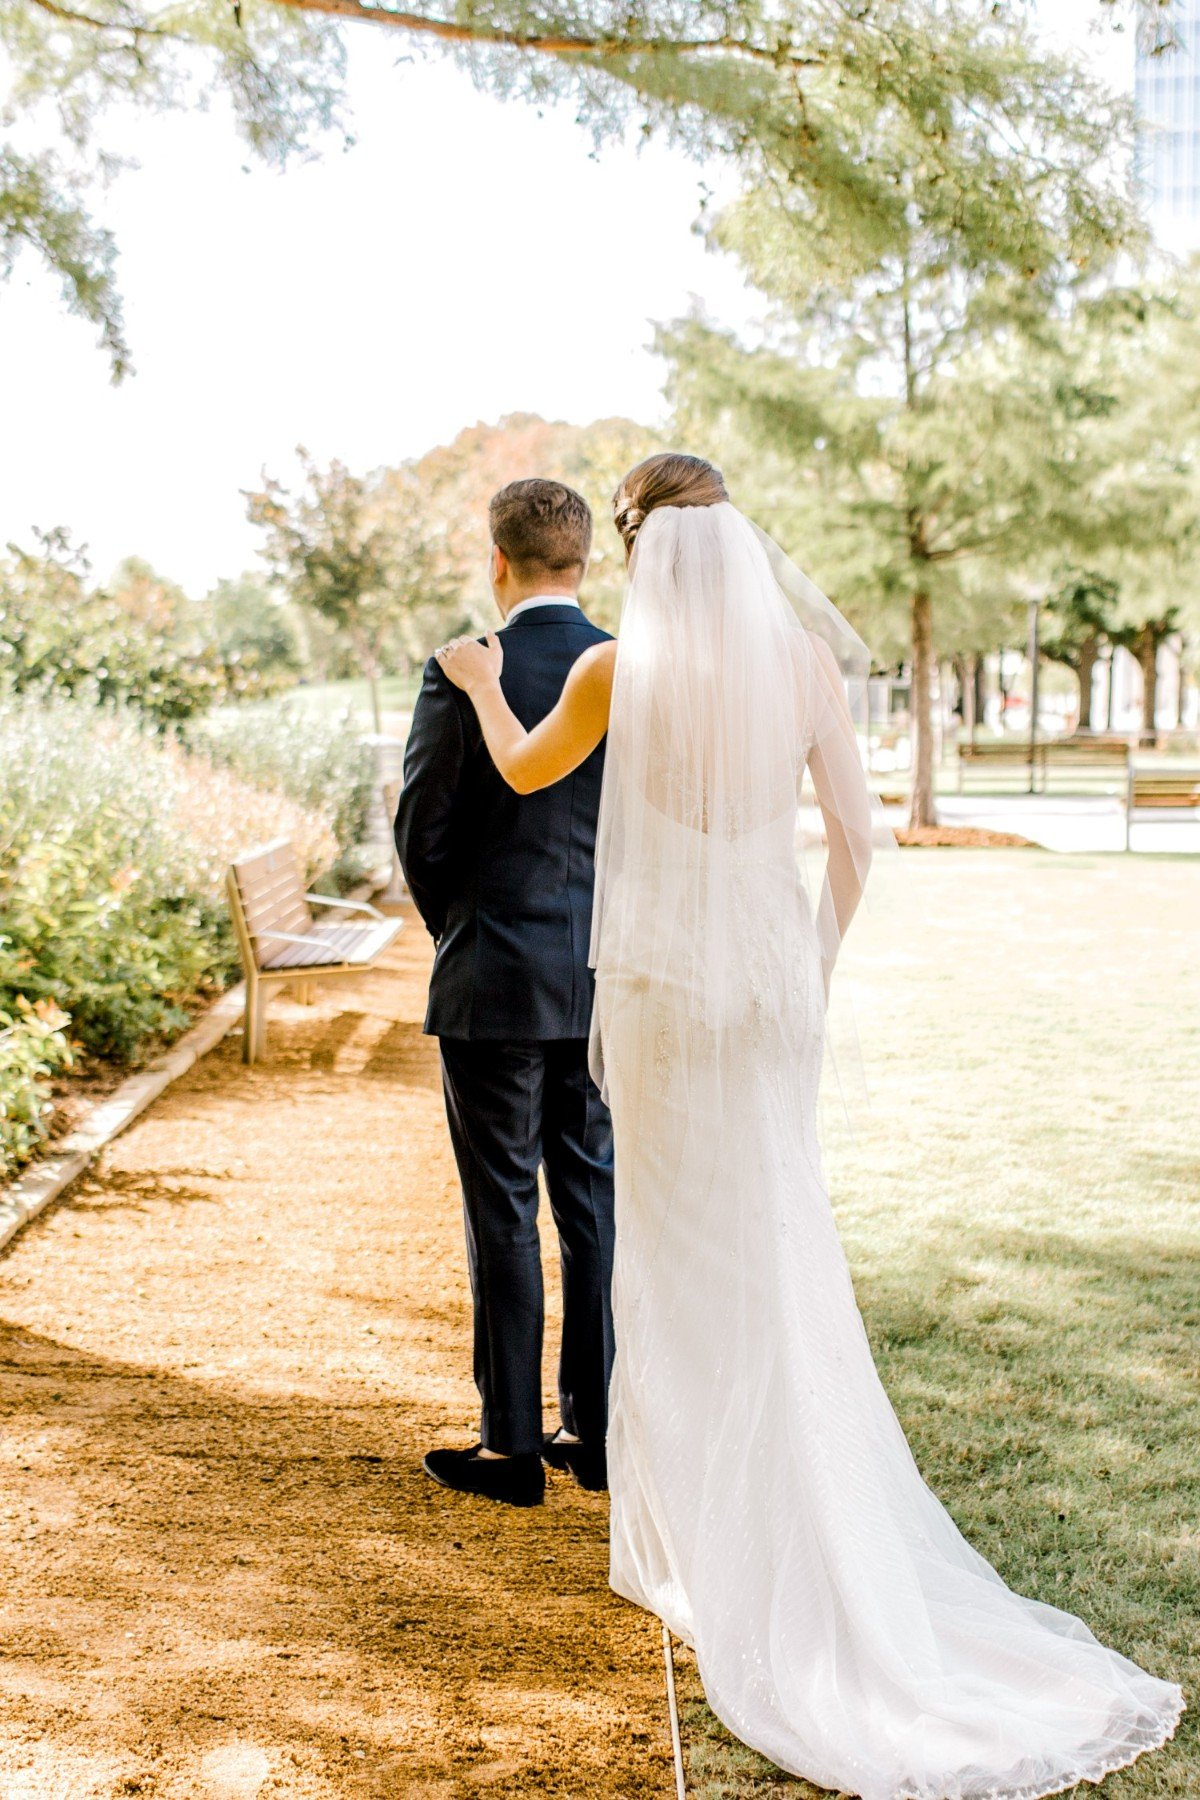 peppers-wedding-the-big-and-bright-10.20.18-24.jpg